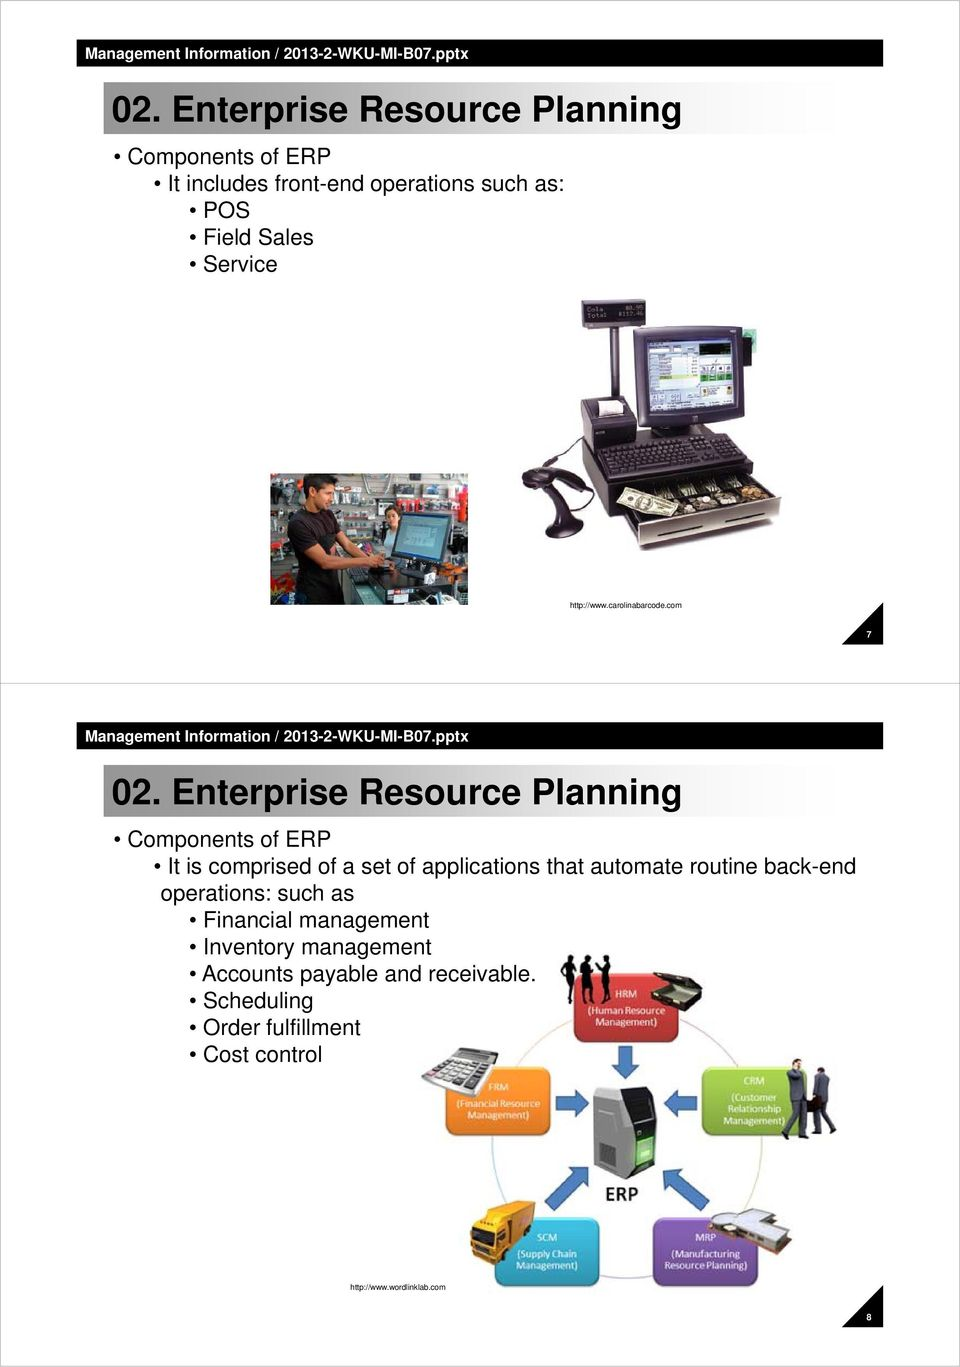 Enterprise Resource Planning Components of ERP It is comprised of a set of applications that automate routine